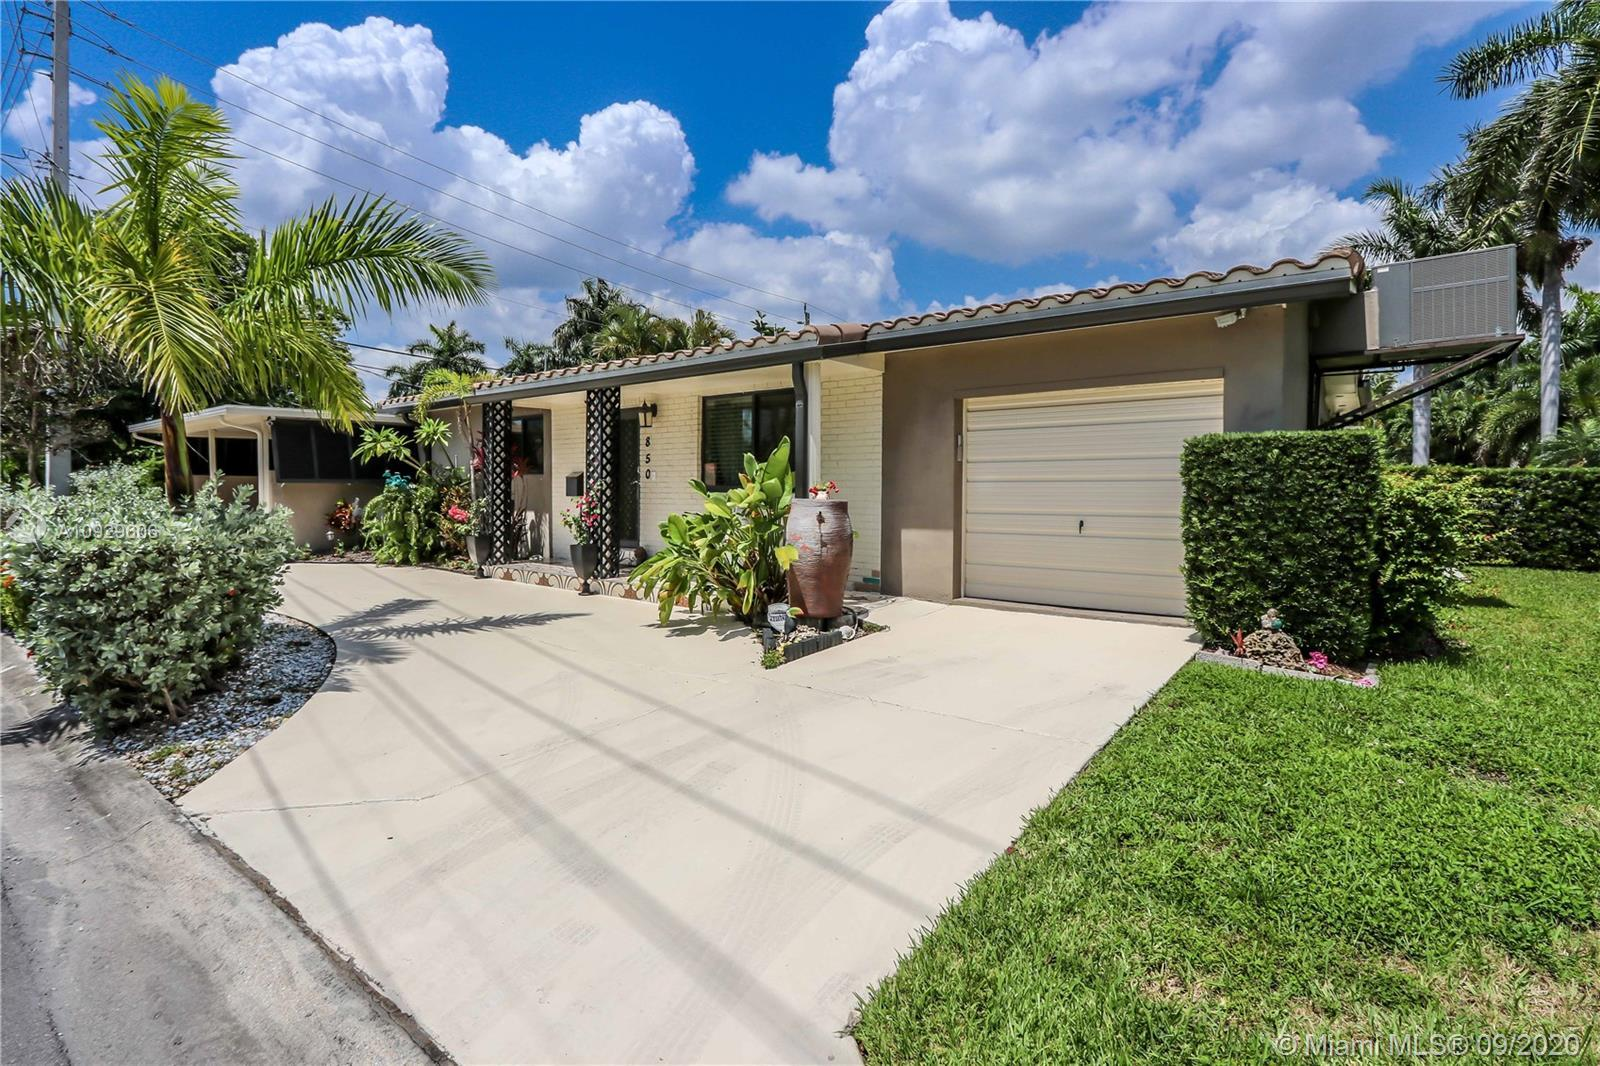 3 Bed/2 Bath CORNER LOT in the highly sought after Hollywood Lakes Section/East Hollywood. This grea